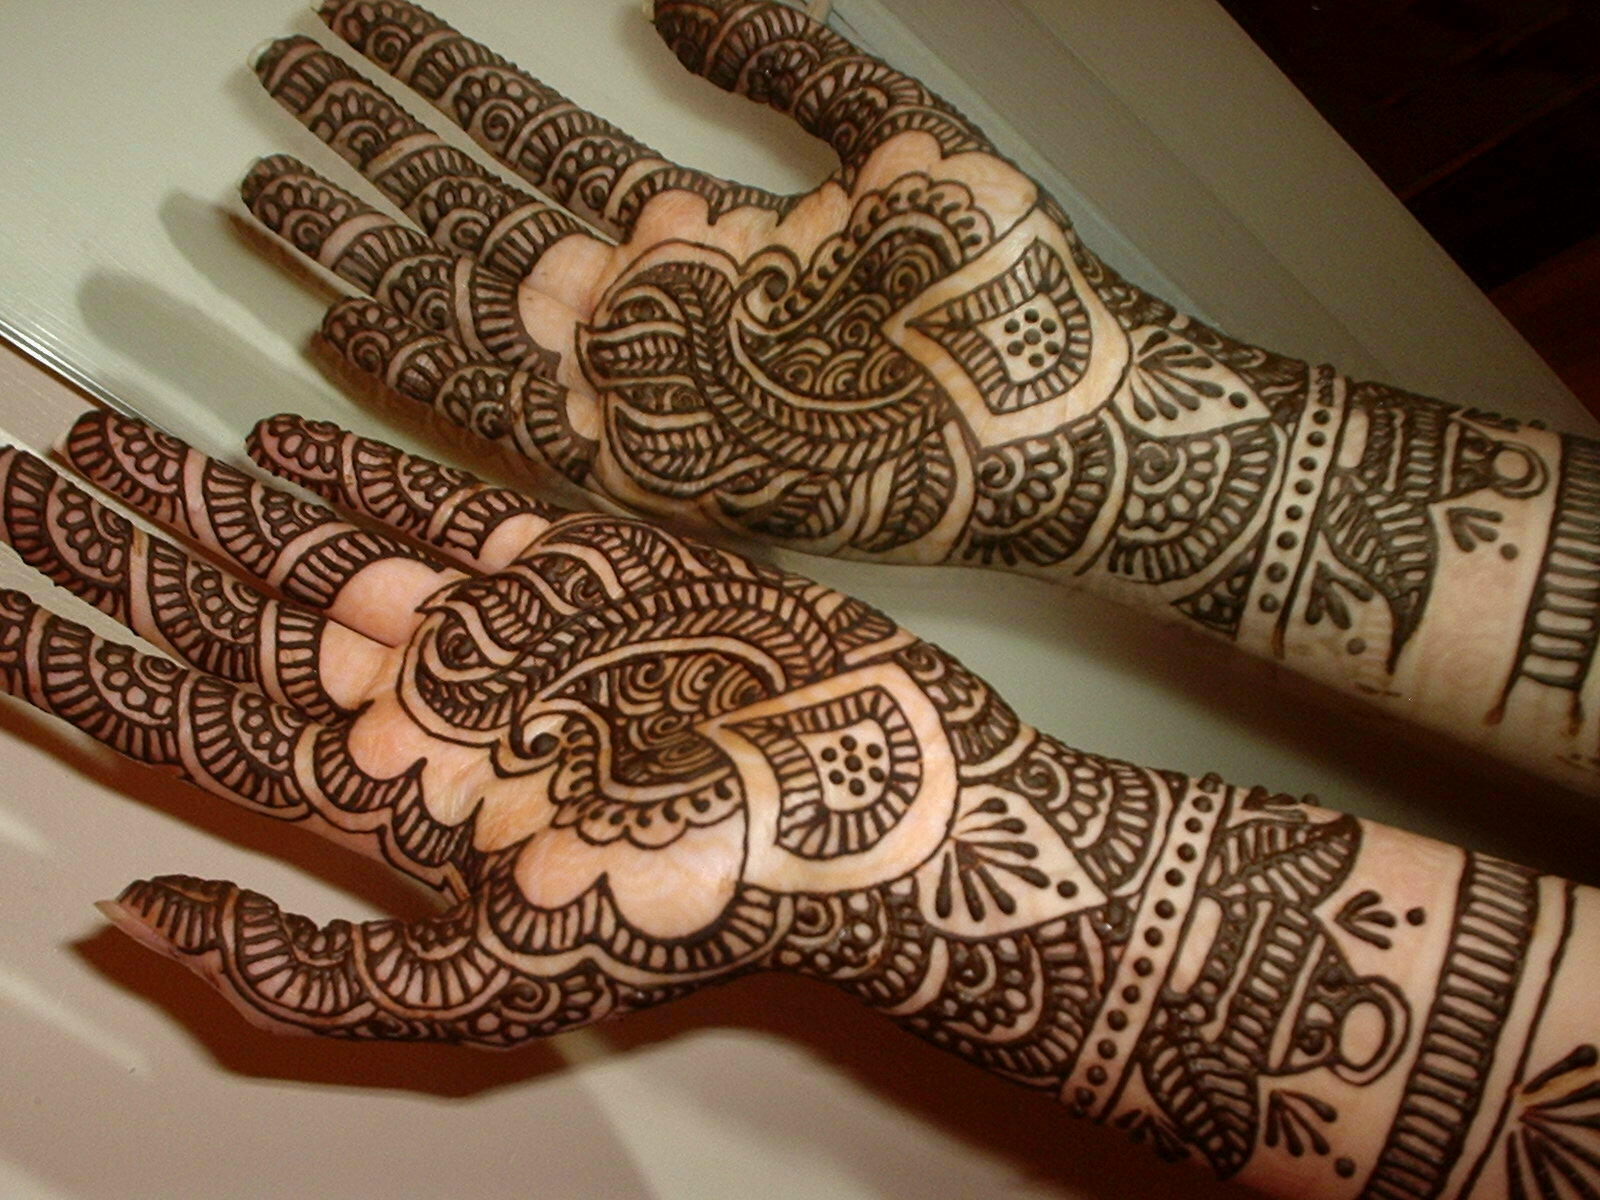 New Mehndi Patterns : Mehndi designs